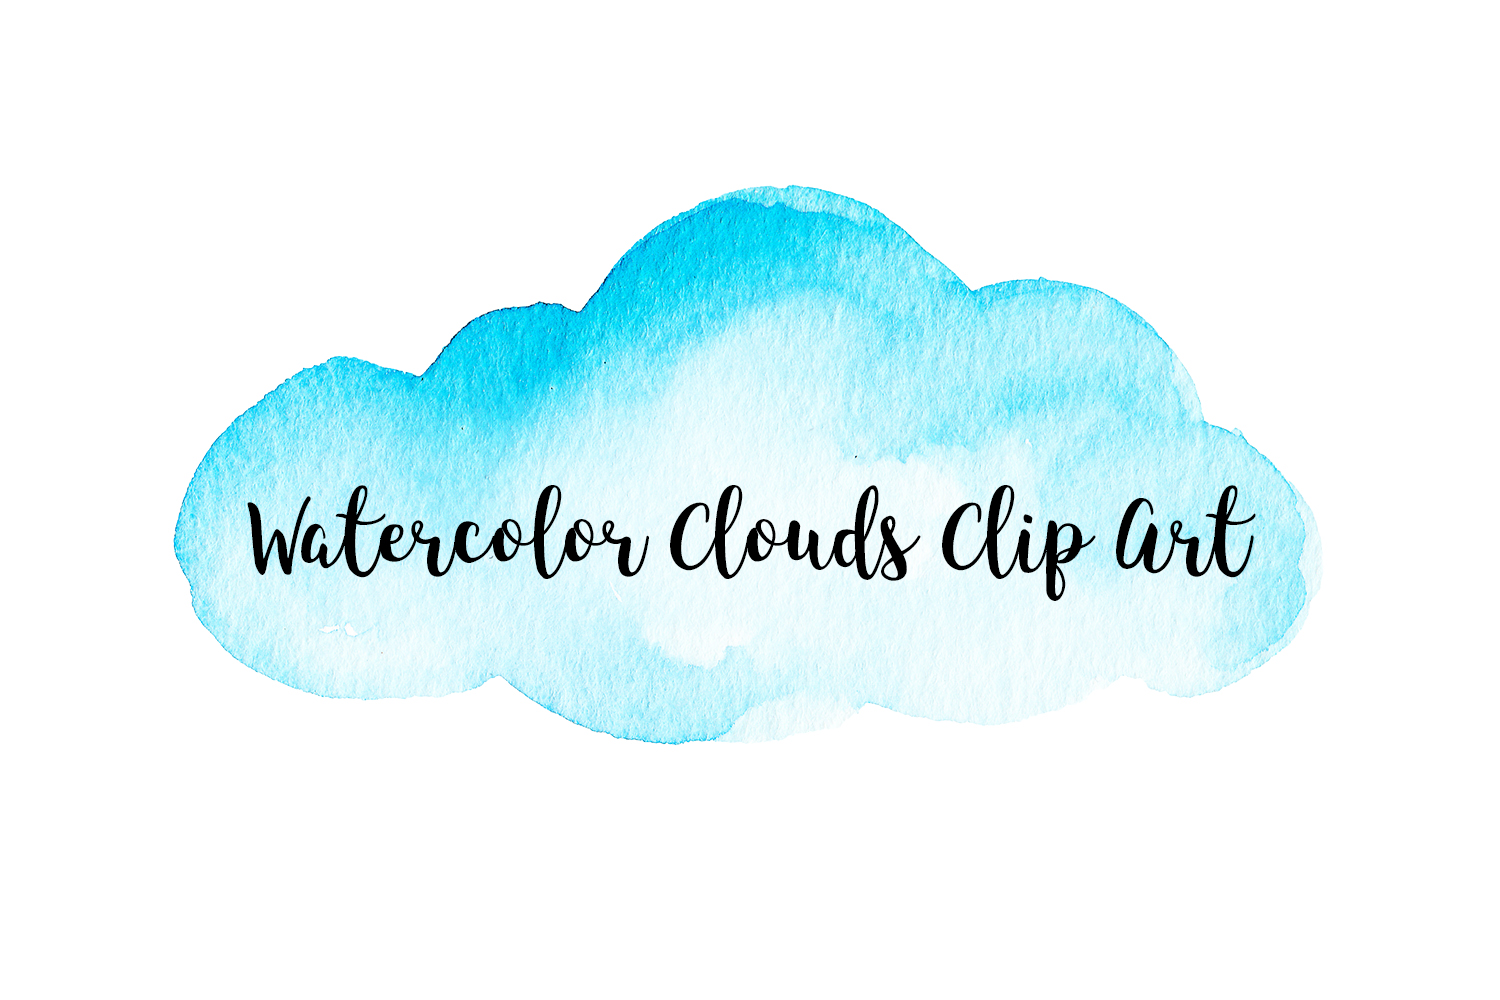 Watercolor clouds clipart jpg freeuse stock Watercolor Clouds Clip Art, Watercolor Clouds PNG jpg freeuse stock